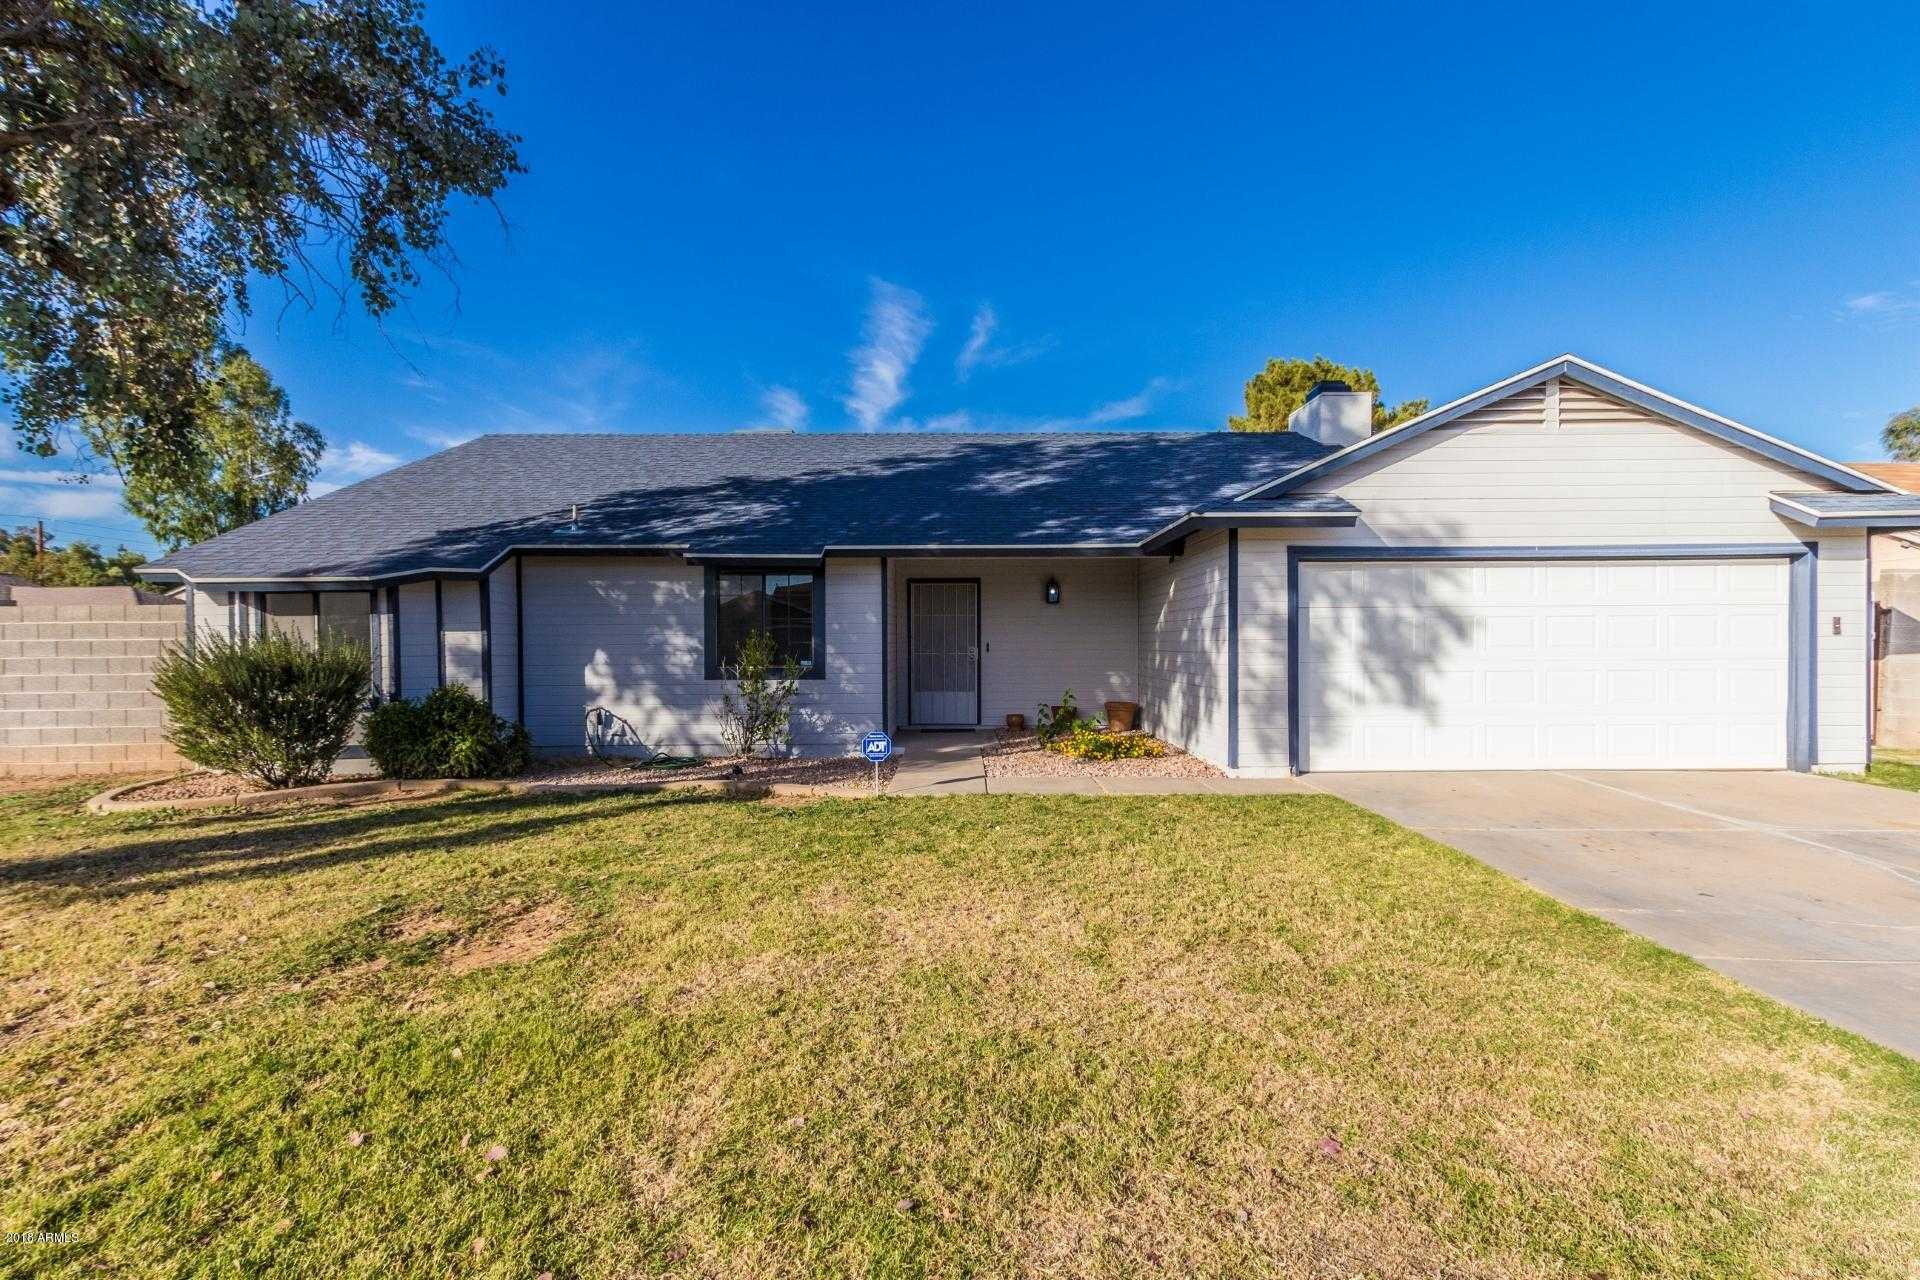 $254,800 - 4Br/2Ba - Home for Sale in Mountain View Meadows Sev, Glendale